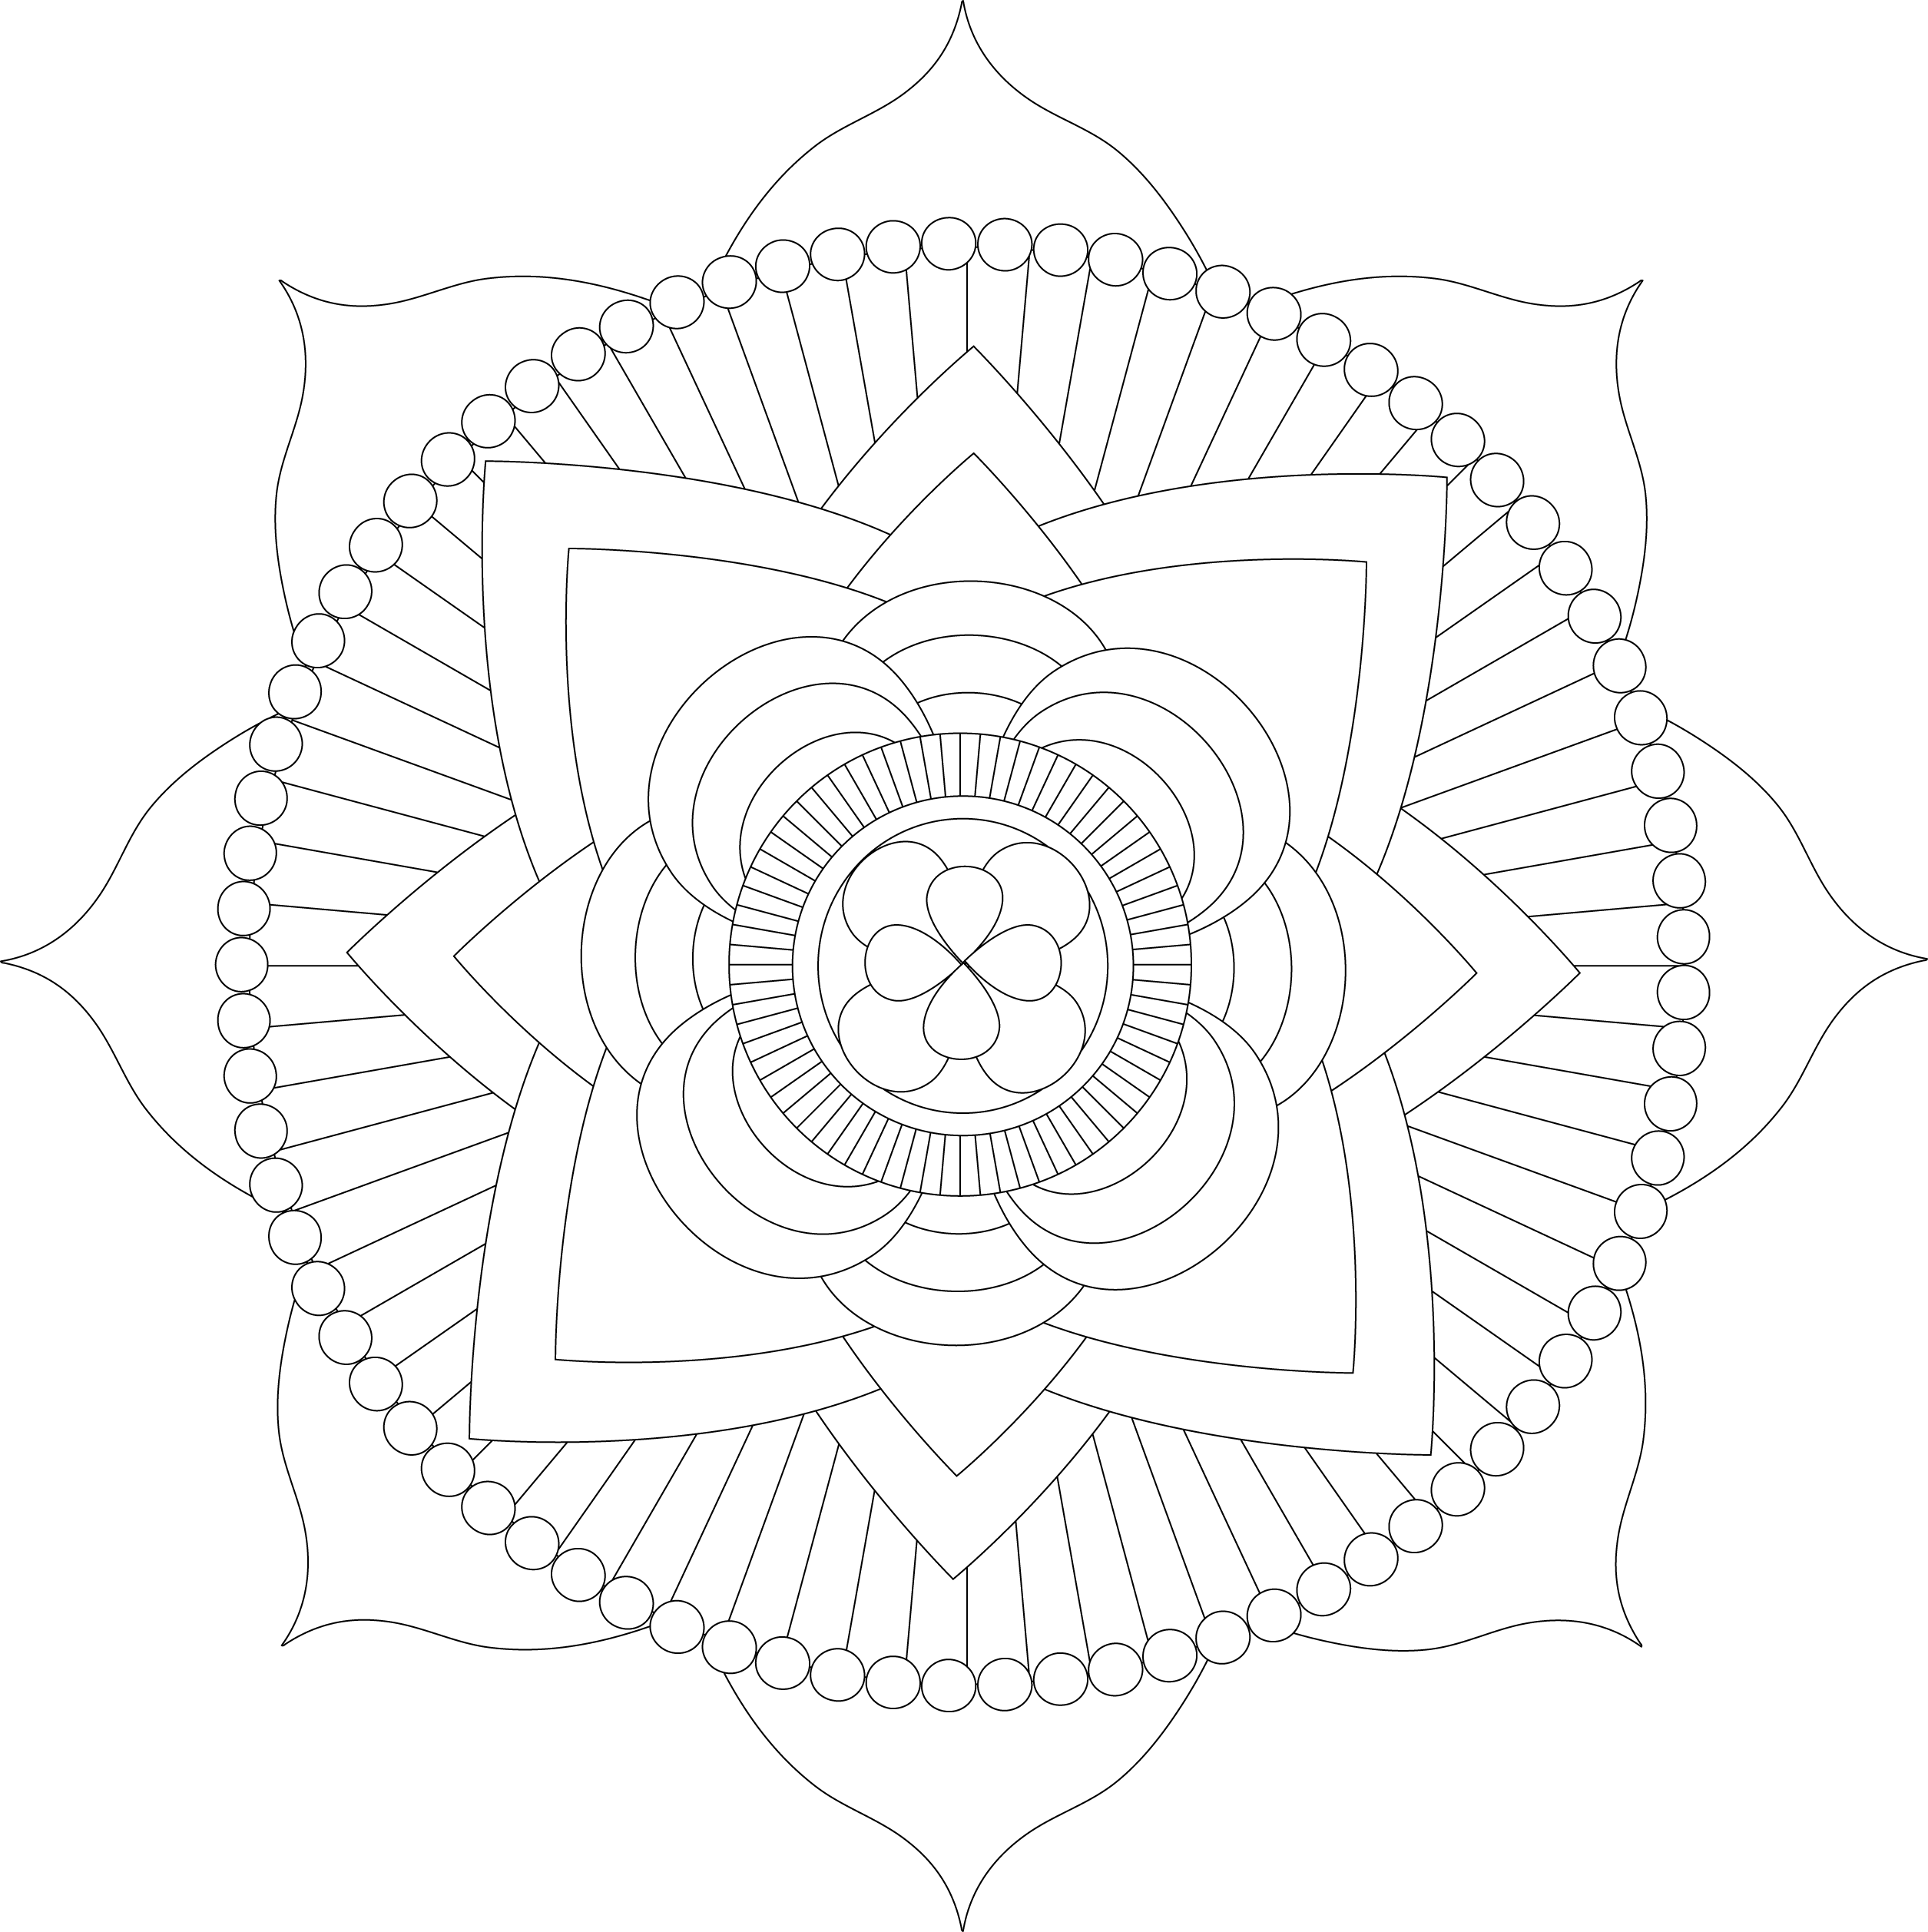 free printable mandalas for adults free printable mandala coloring pages for adults best printable adults free for mandalas